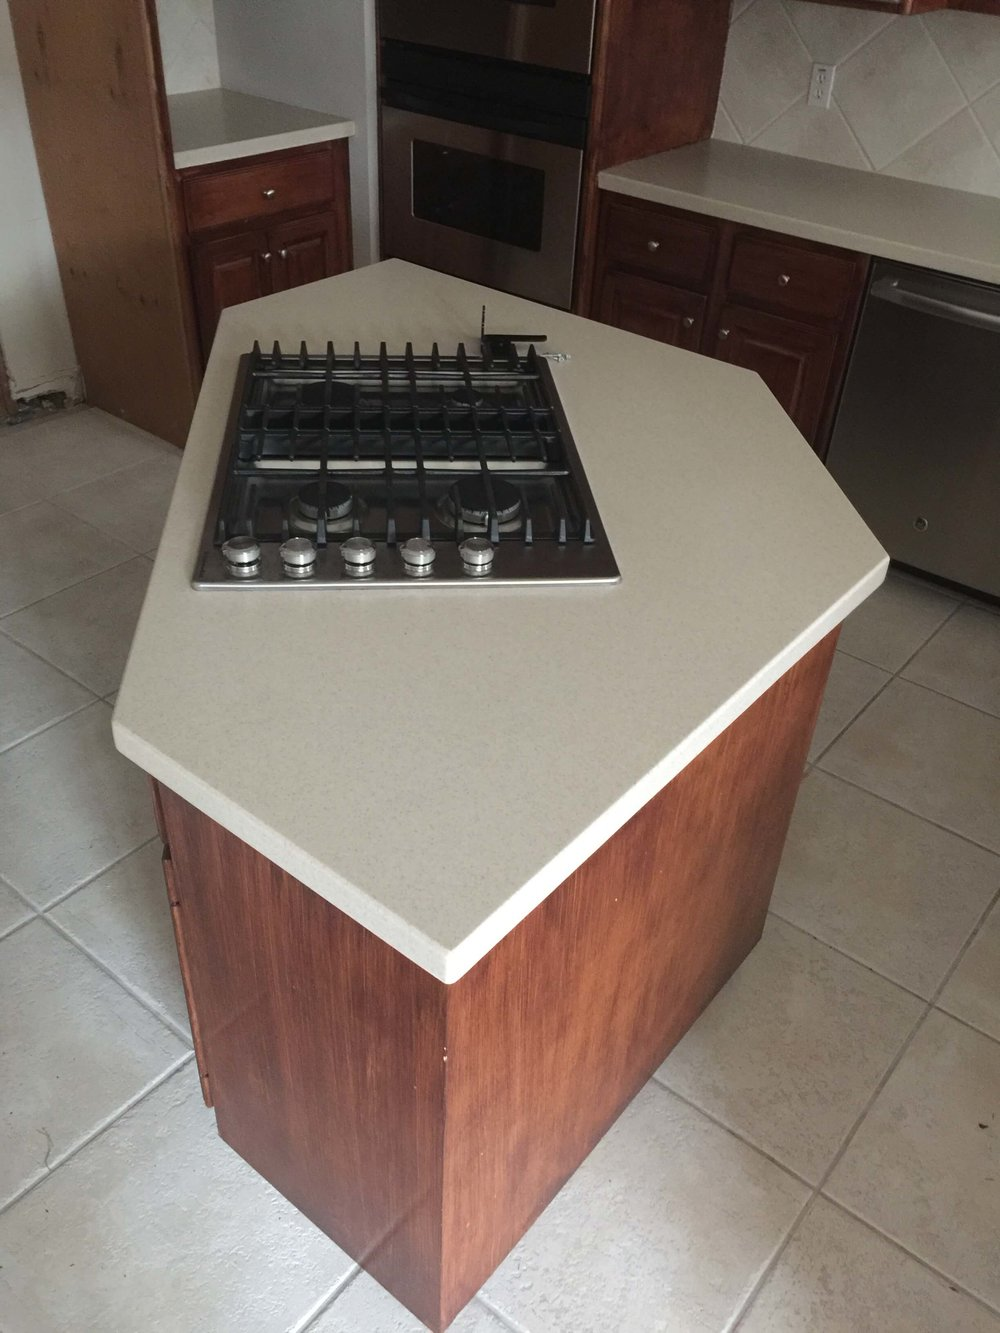 Before kitchen remodel with oddly shaped kitchen island